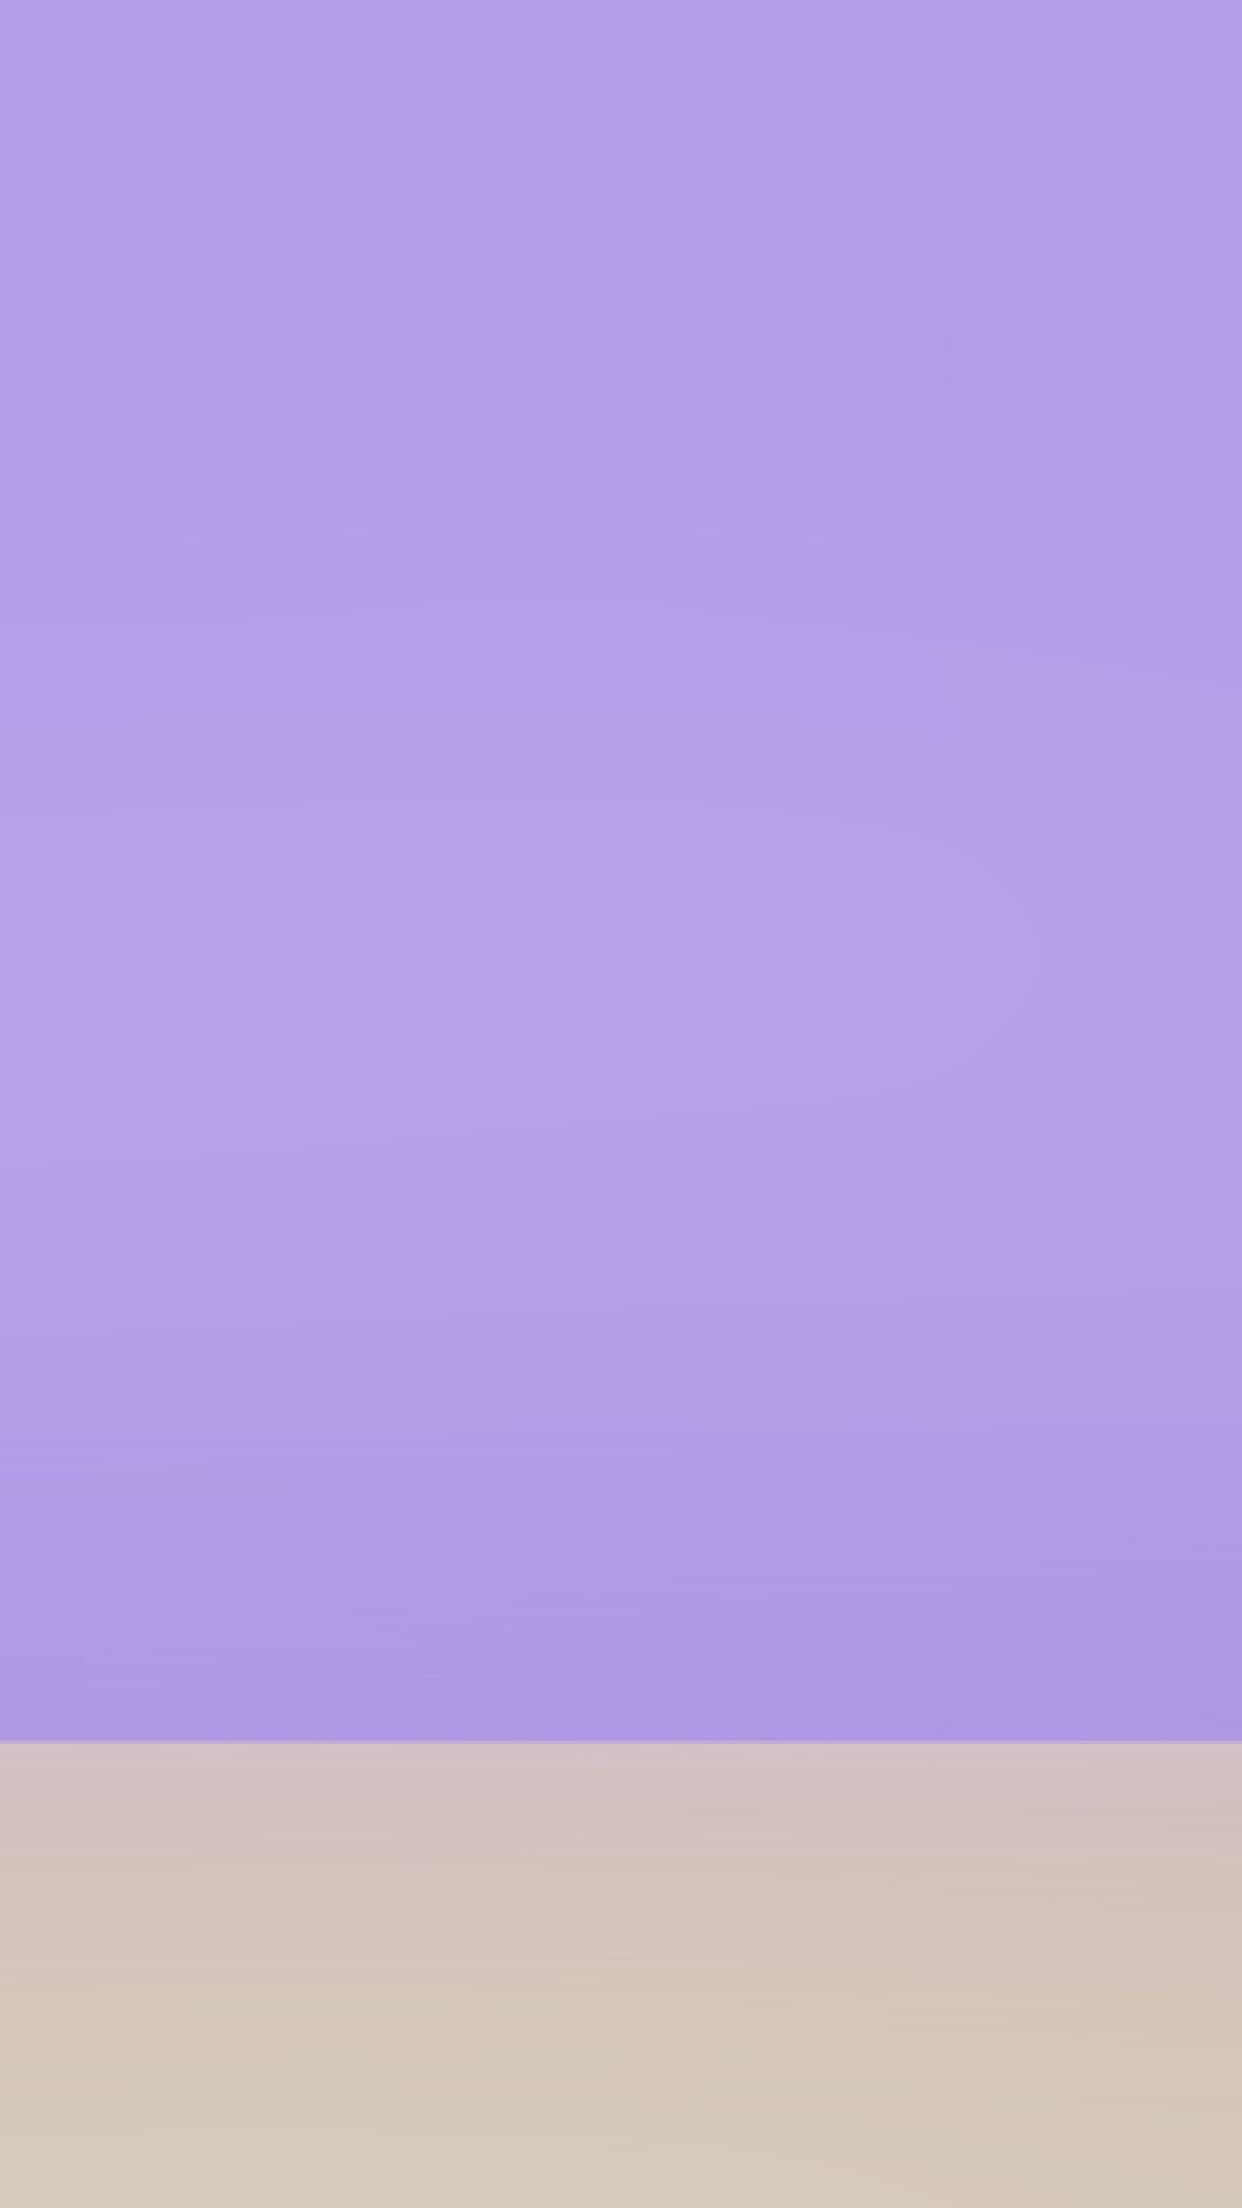 Papers Co Iphone Wallpaper Sn34 Flat Colorlovers Purple Blur Gradation Pastel